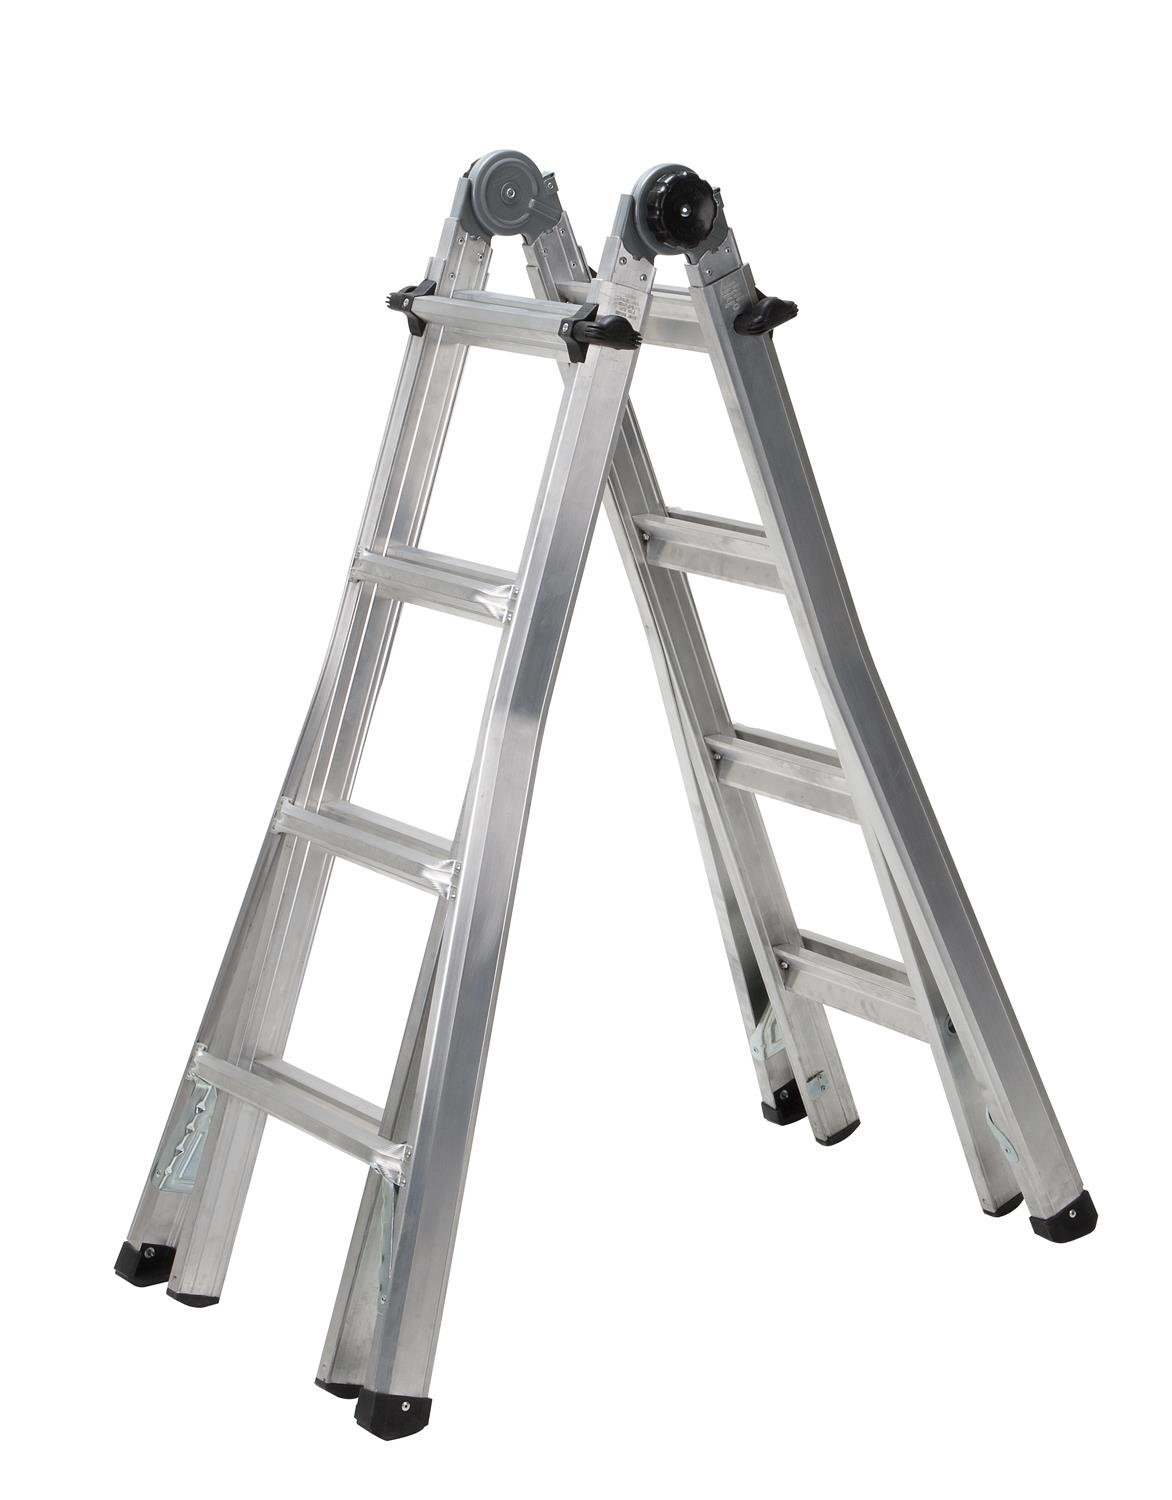 Cosco 18 ft. Reach Aluminum Telescoping Multi-Position Ladder with 300 lb. Load Capacity Type IA Duty Rating